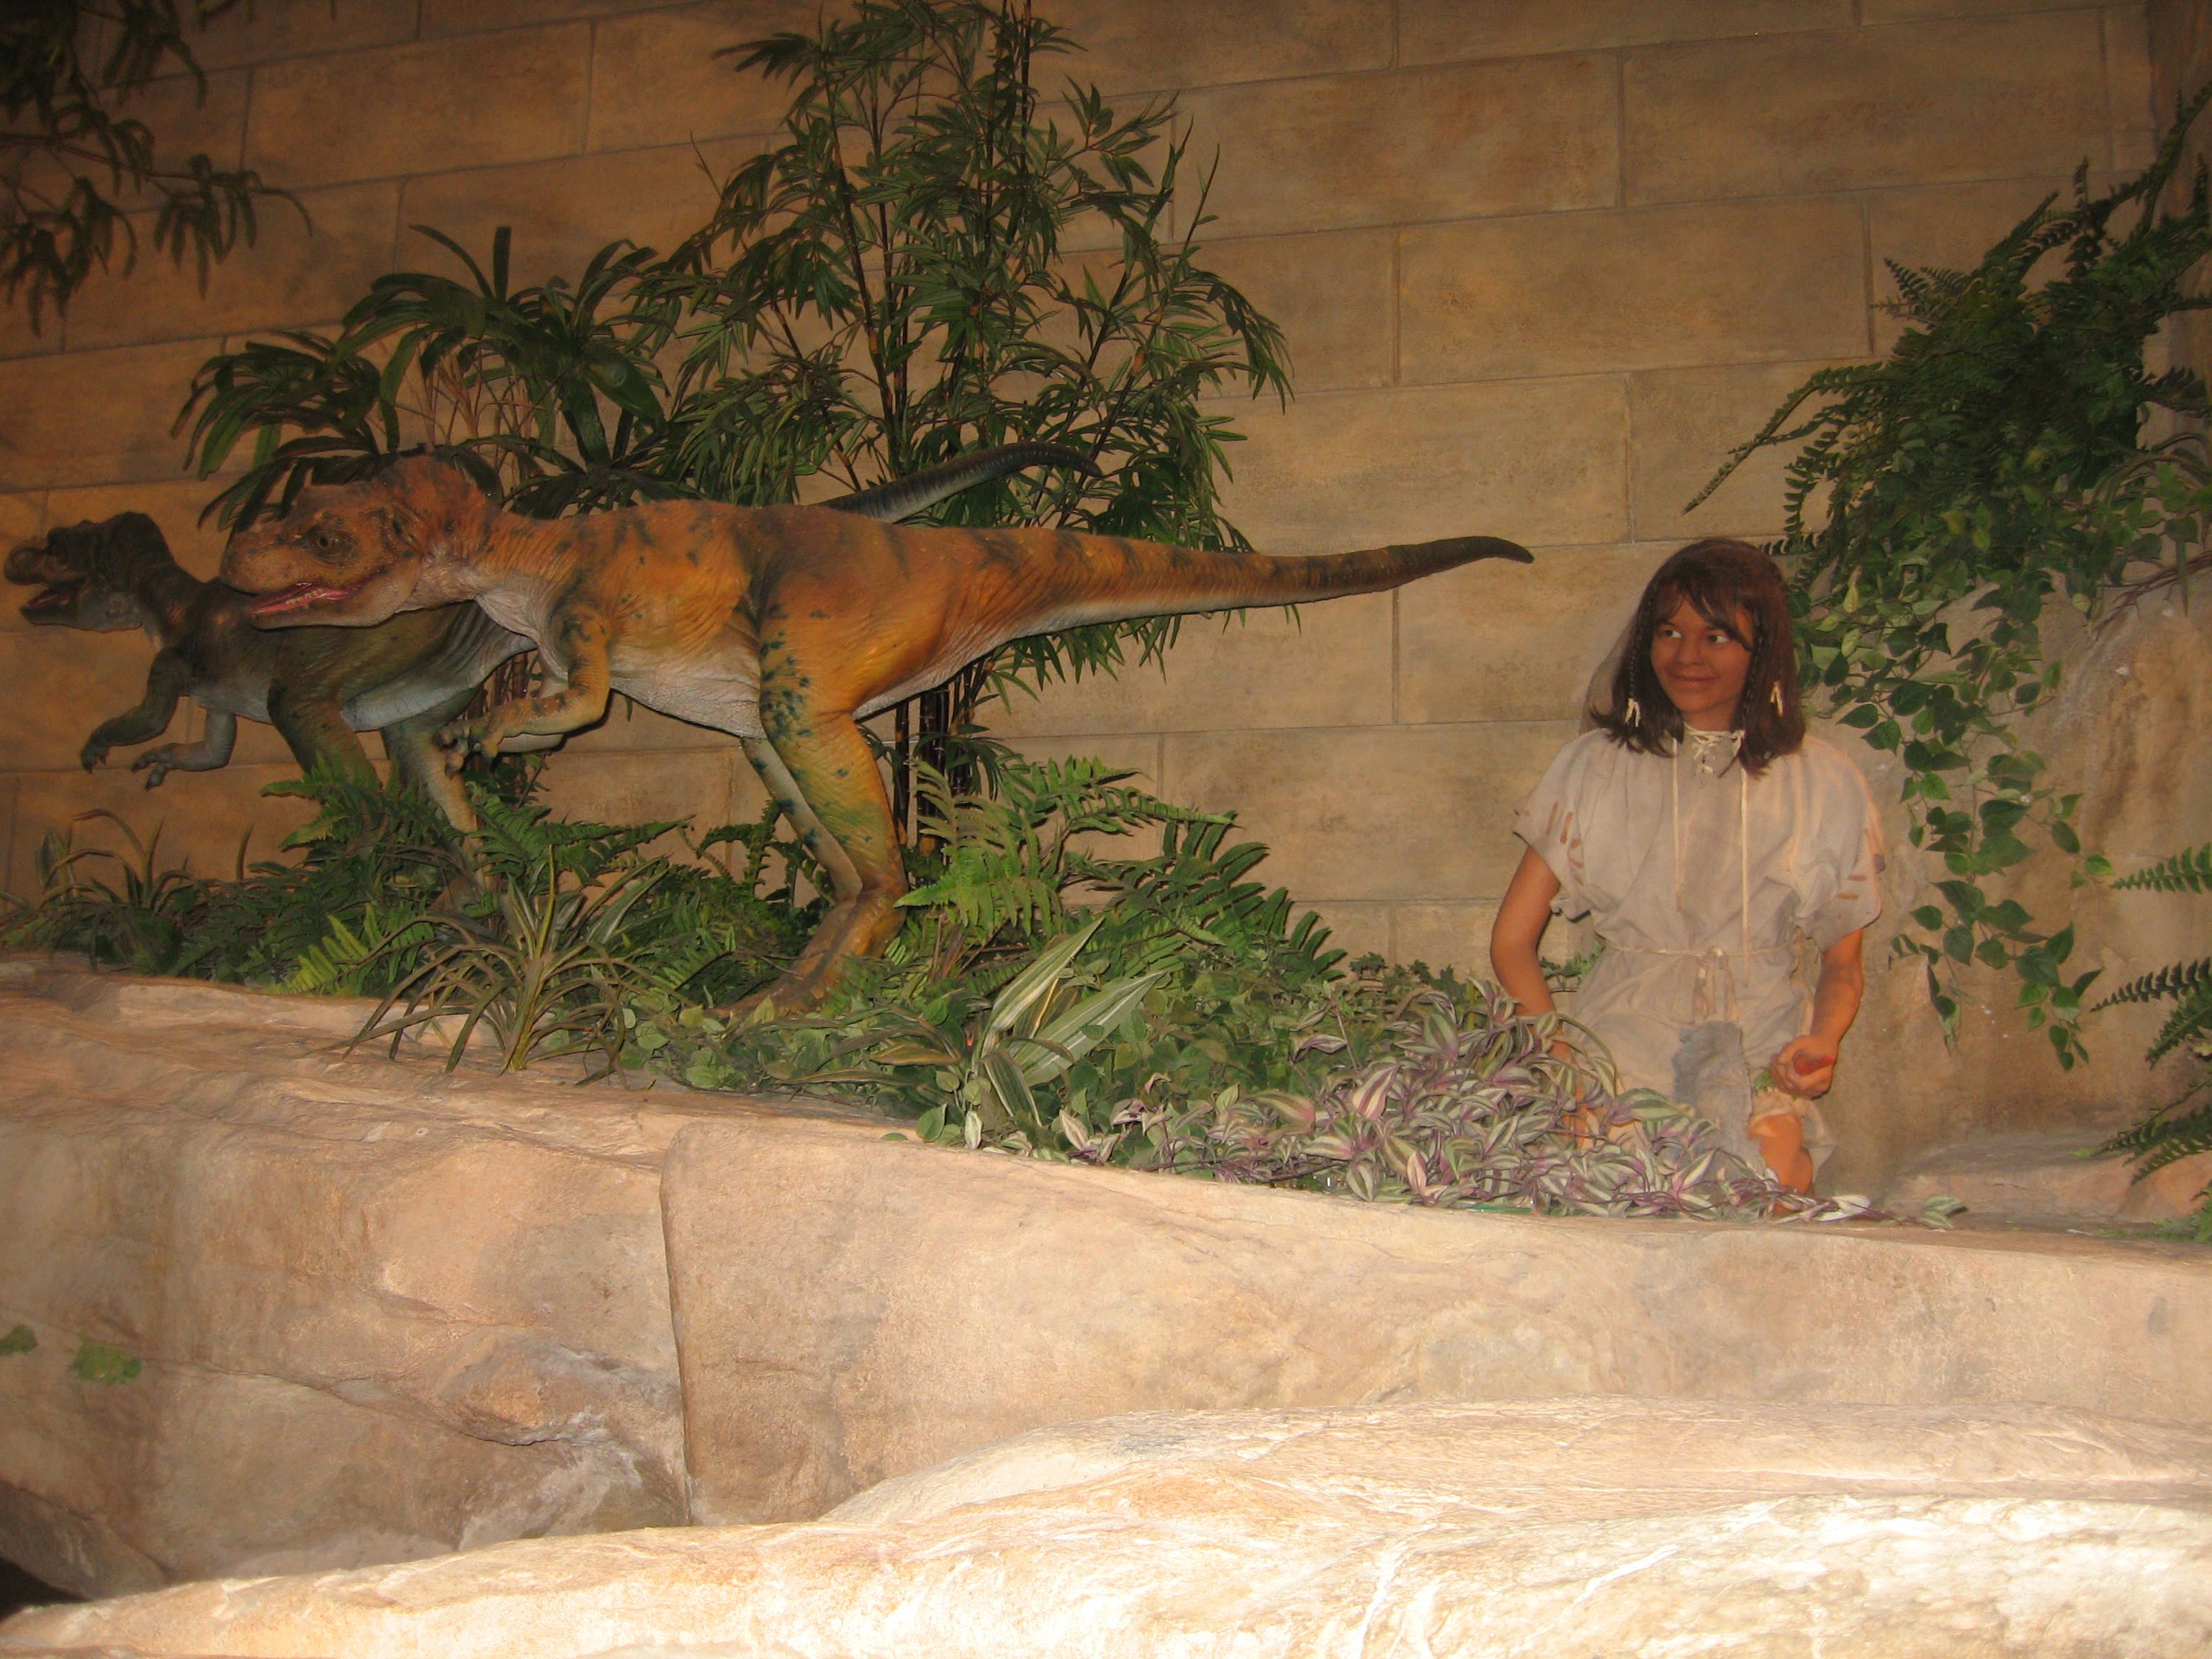 demon child plays with dinosaur at dawn of time 6000 years ago